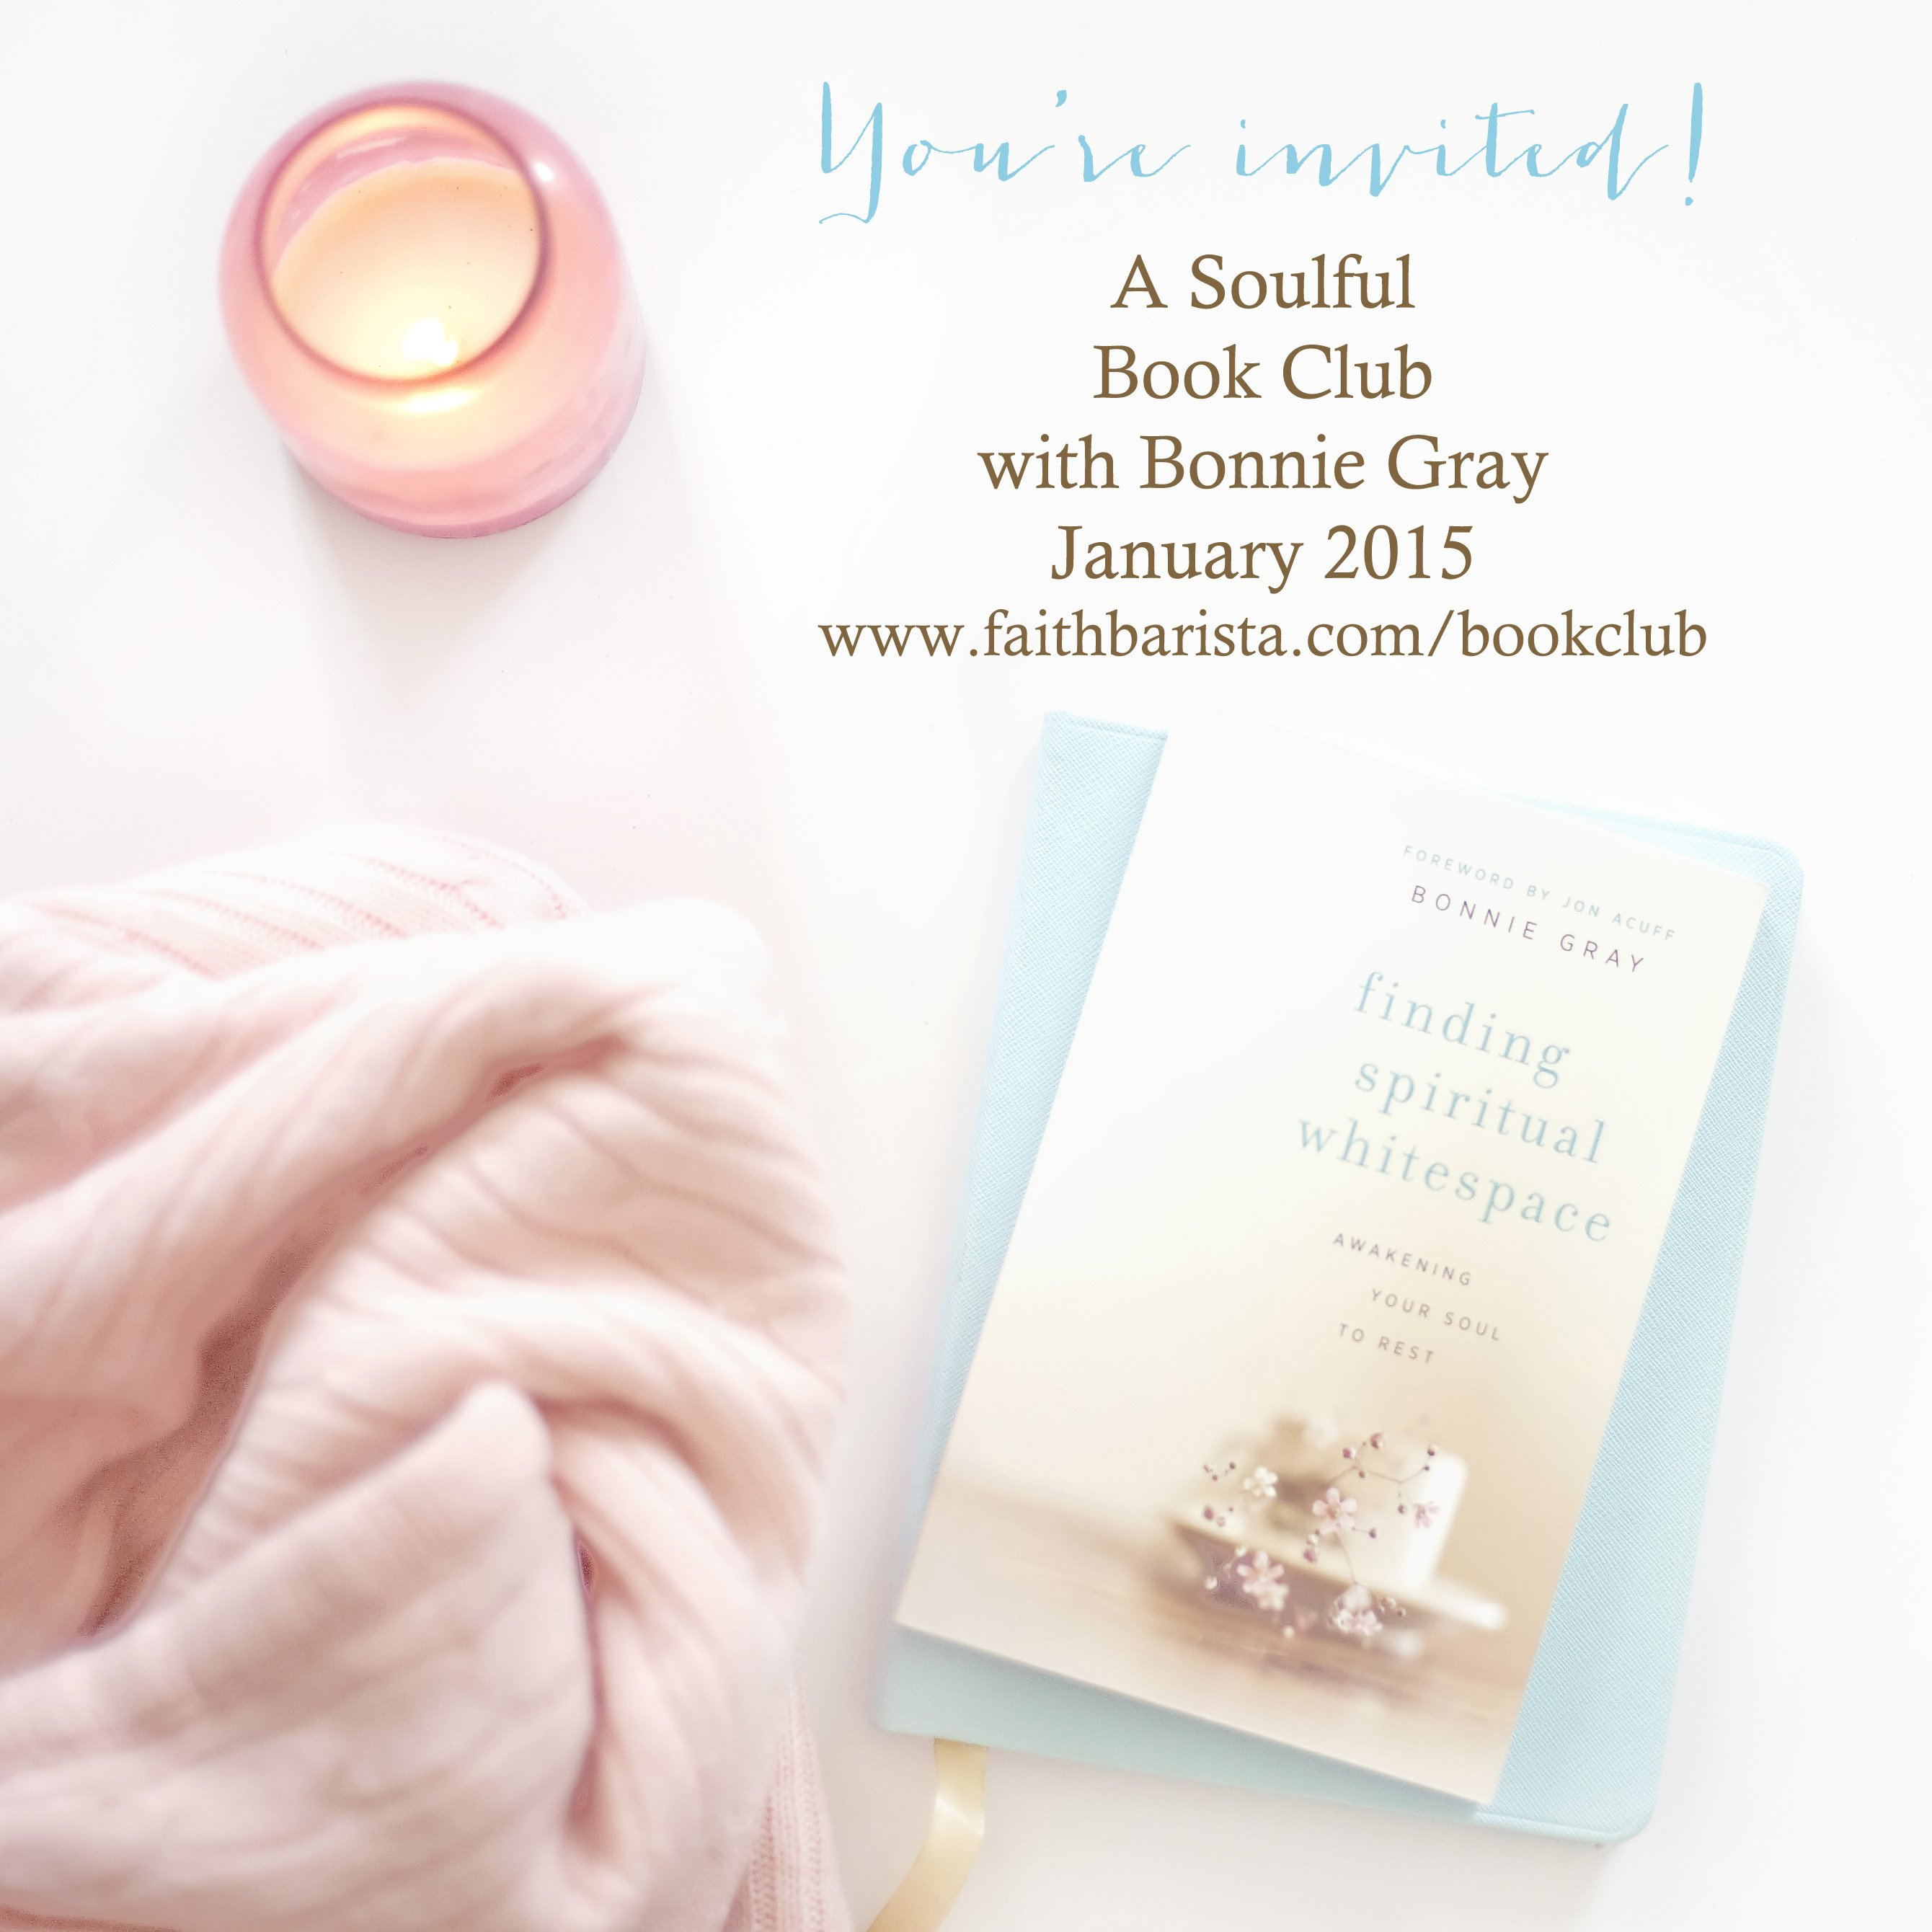 Finding Spiritual Whitespace Book Club